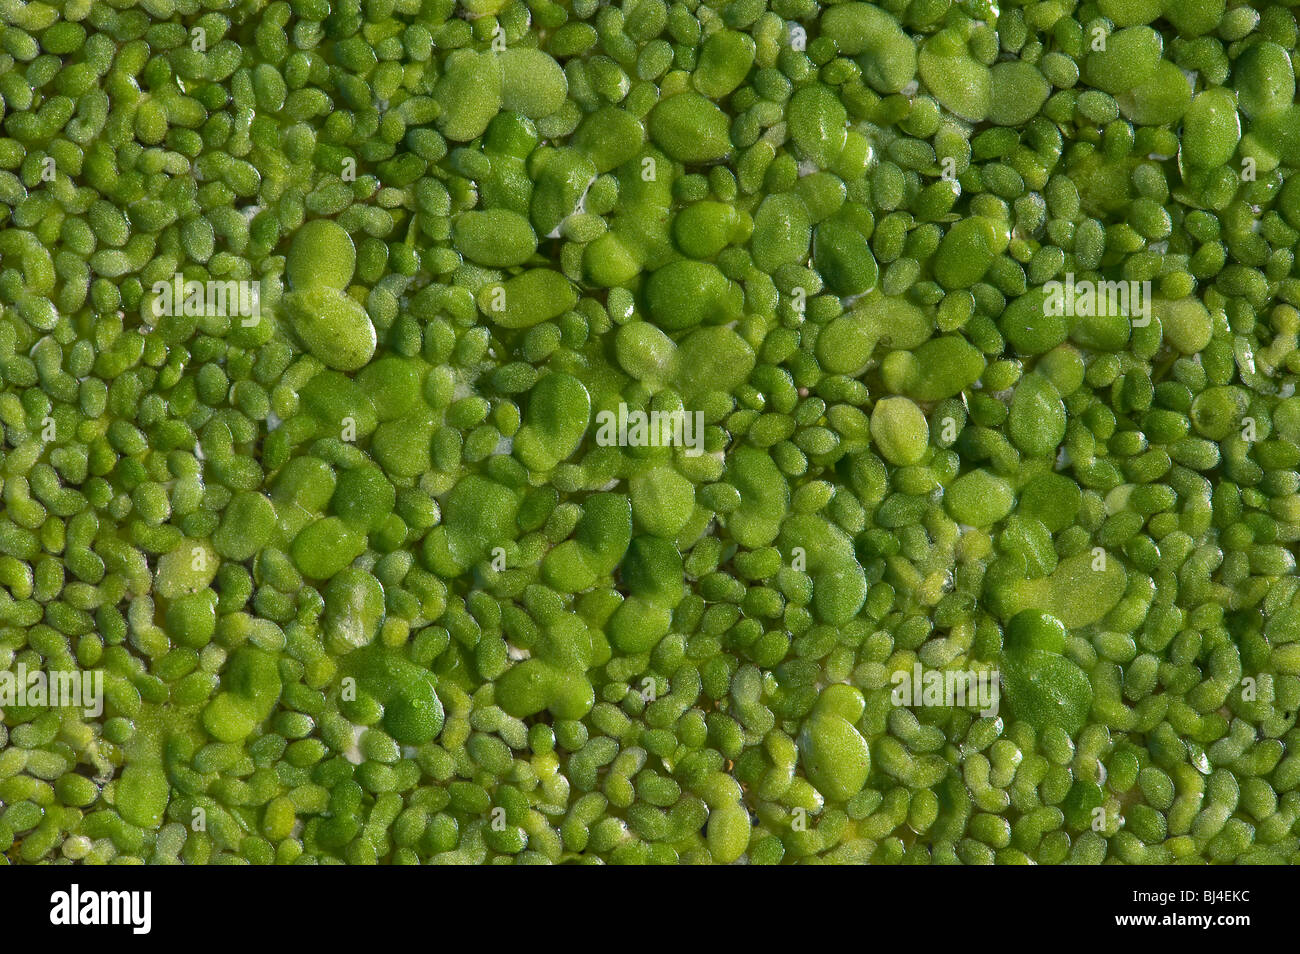 Lesser duckweed, Lemna minor, floats on water surface - Stock Image